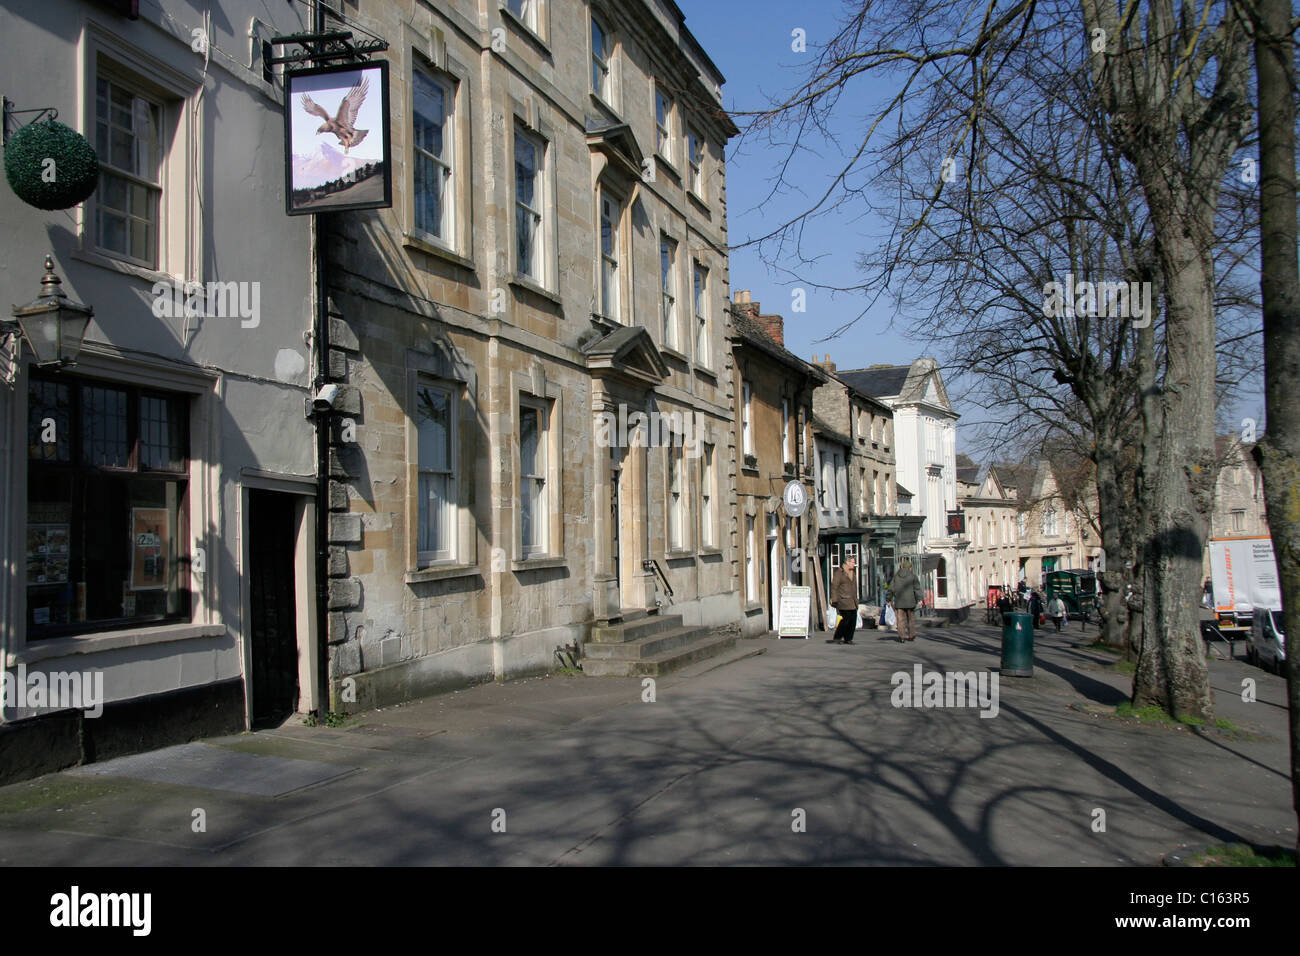 High Street Witney Oxfordshire - Stock Image